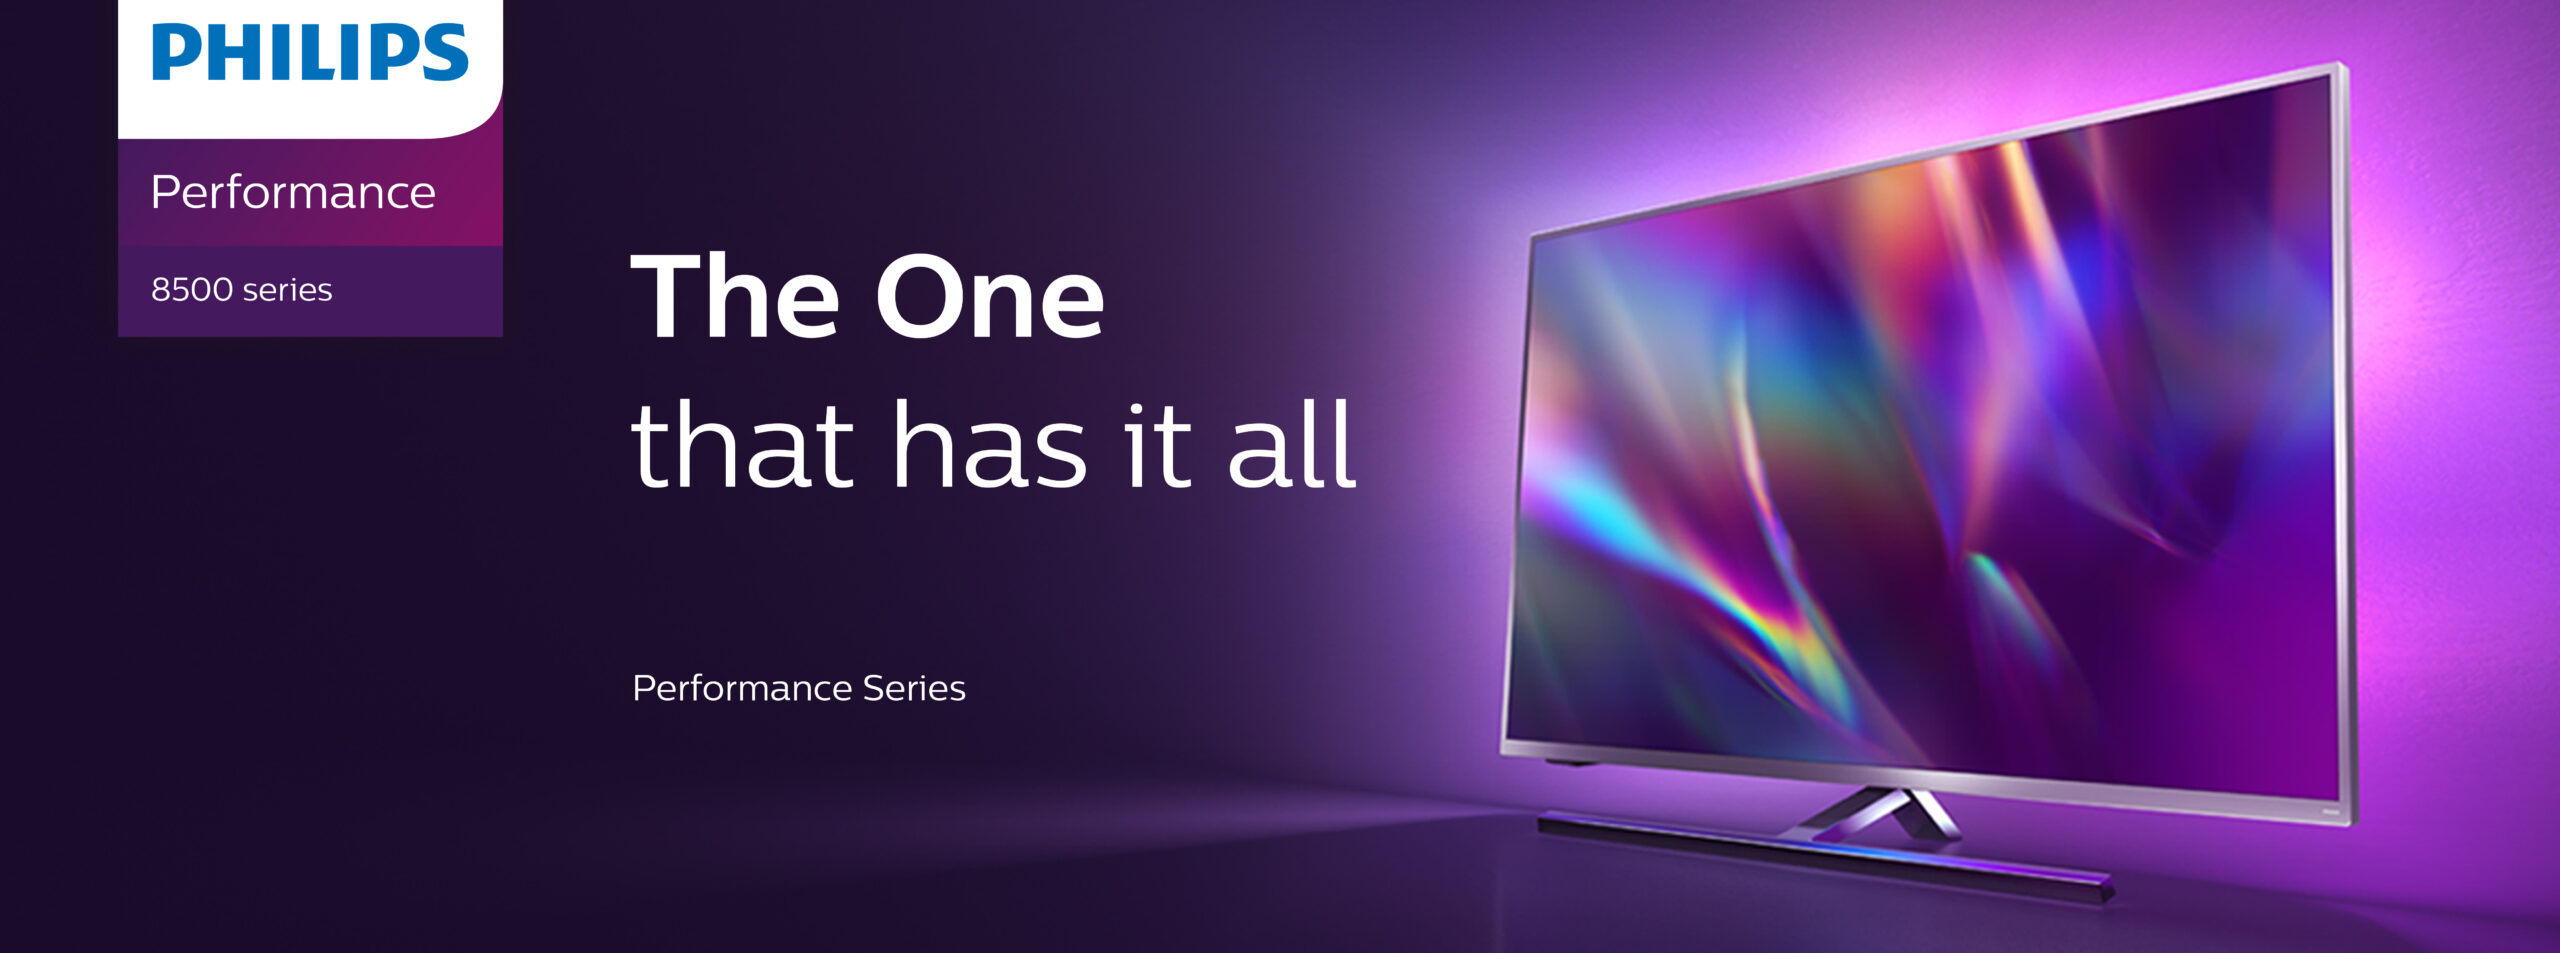 Philips Performance series 2020 - the one